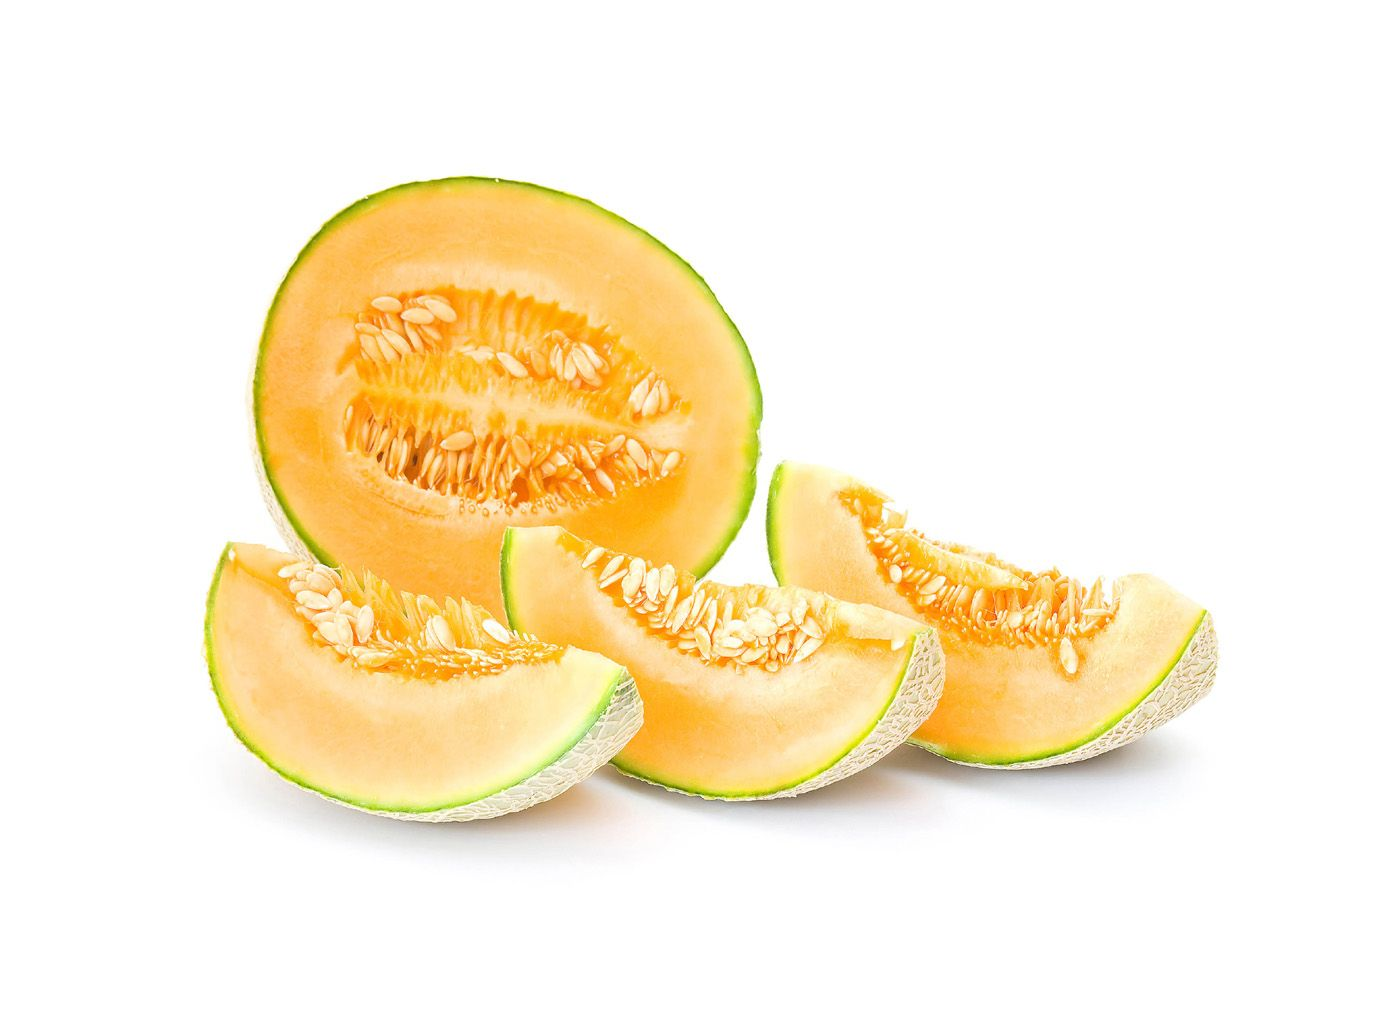 Pin By Montse On Essenza Di Frutta E Verdura Cantaloupe Vegetable Harvest Fruit Affordable and search from millions of royalty free images, photos and vectors. pinterest